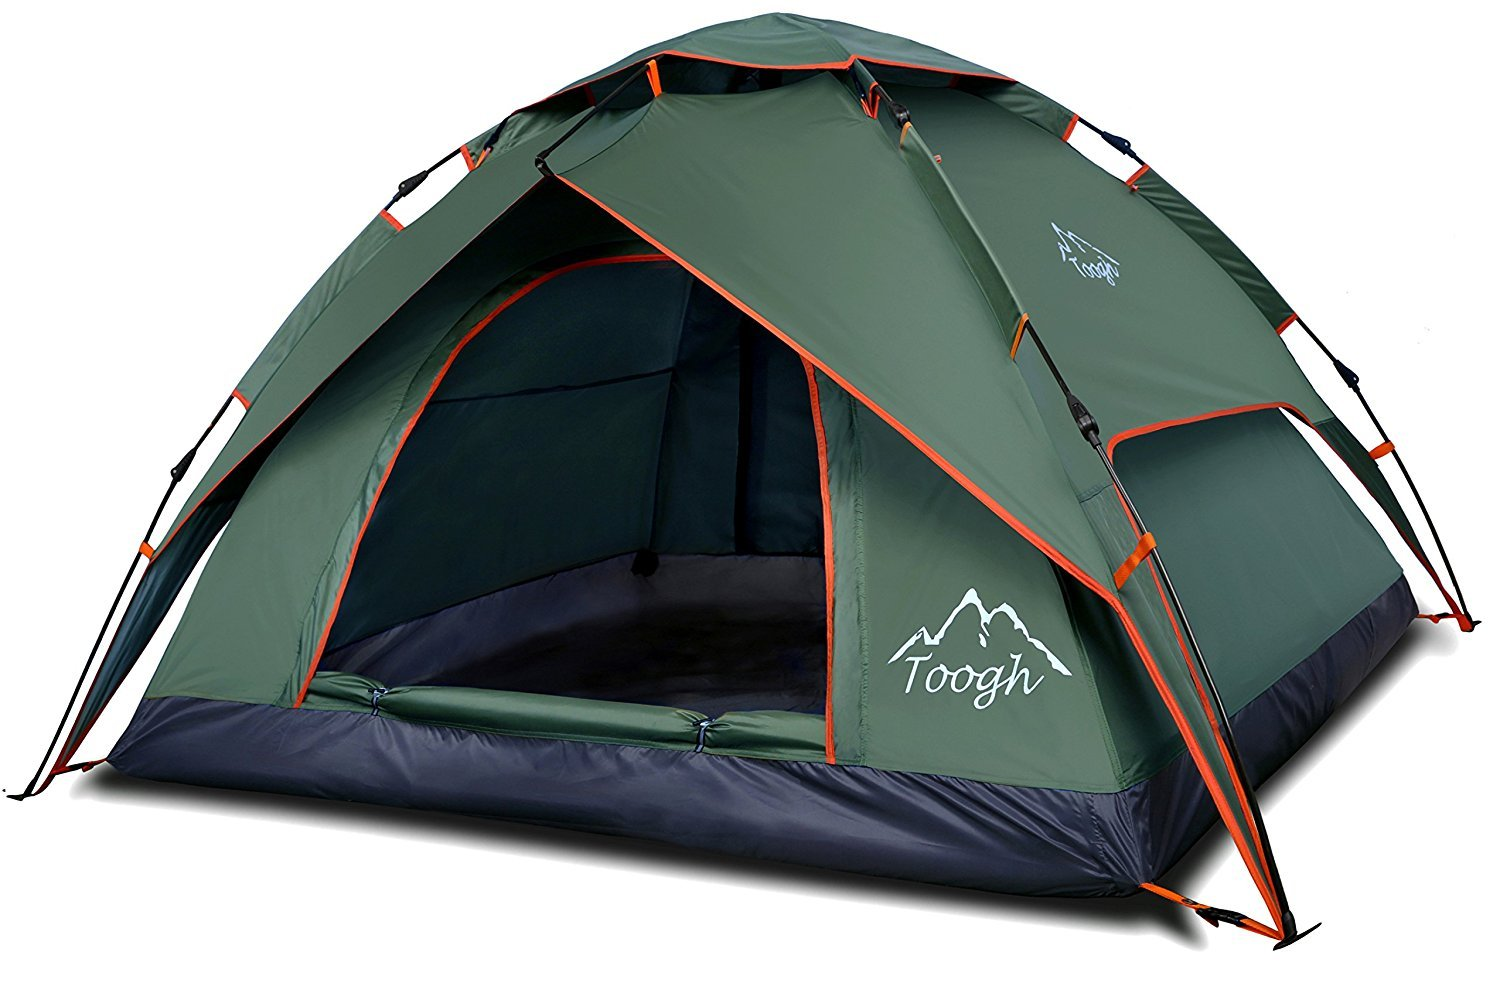 2 u0026 3 Person C&ing Tent - Toogh 3 Season Backpacking tent Sundome pop up Tents  sc 1 st  Amazon.com & Amazon.com : Coleman Bayside 8-Person Family Tent - Orange : Tent ...